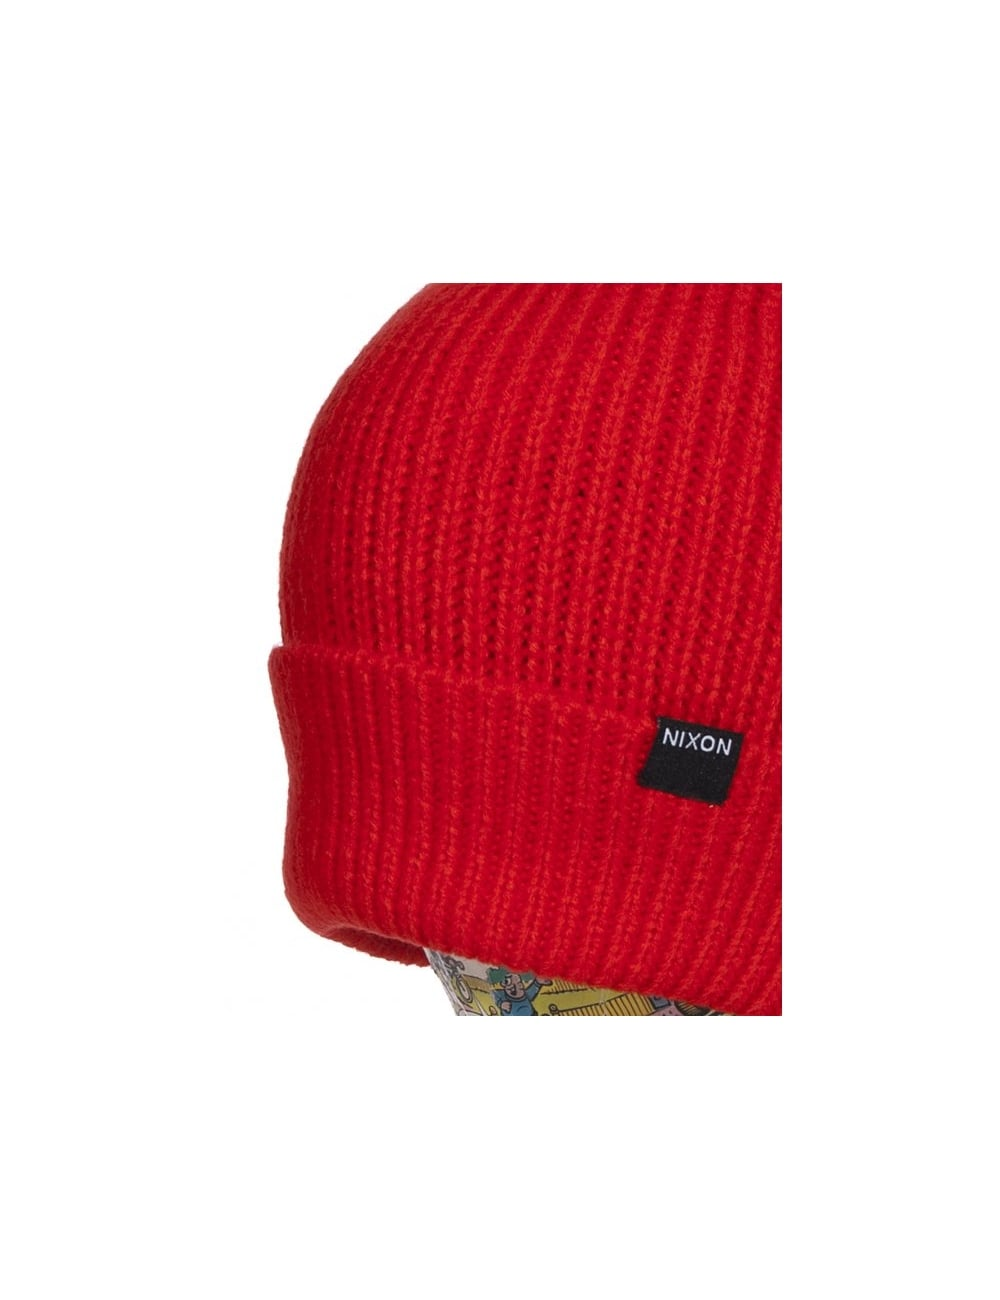 652647a472b07 Nixon Regain Beanie - Red Pepper - Accessories from Fat Buddha Store UK